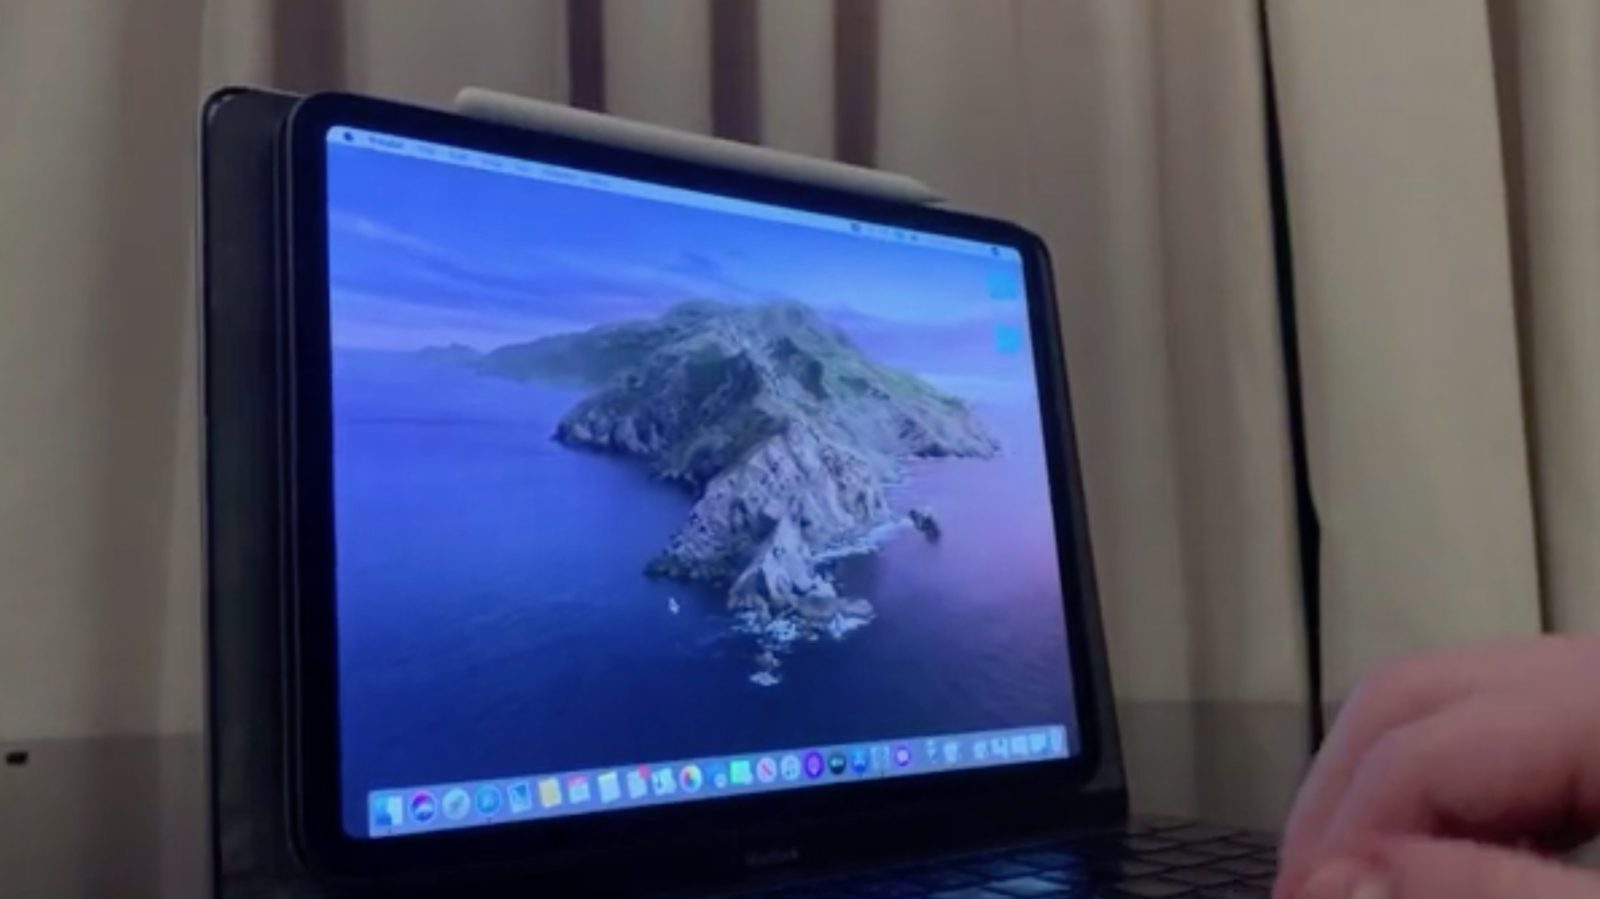 Redditor turns busted MacBook Pro into a clever Mac + iPad hybrid using Sidecar